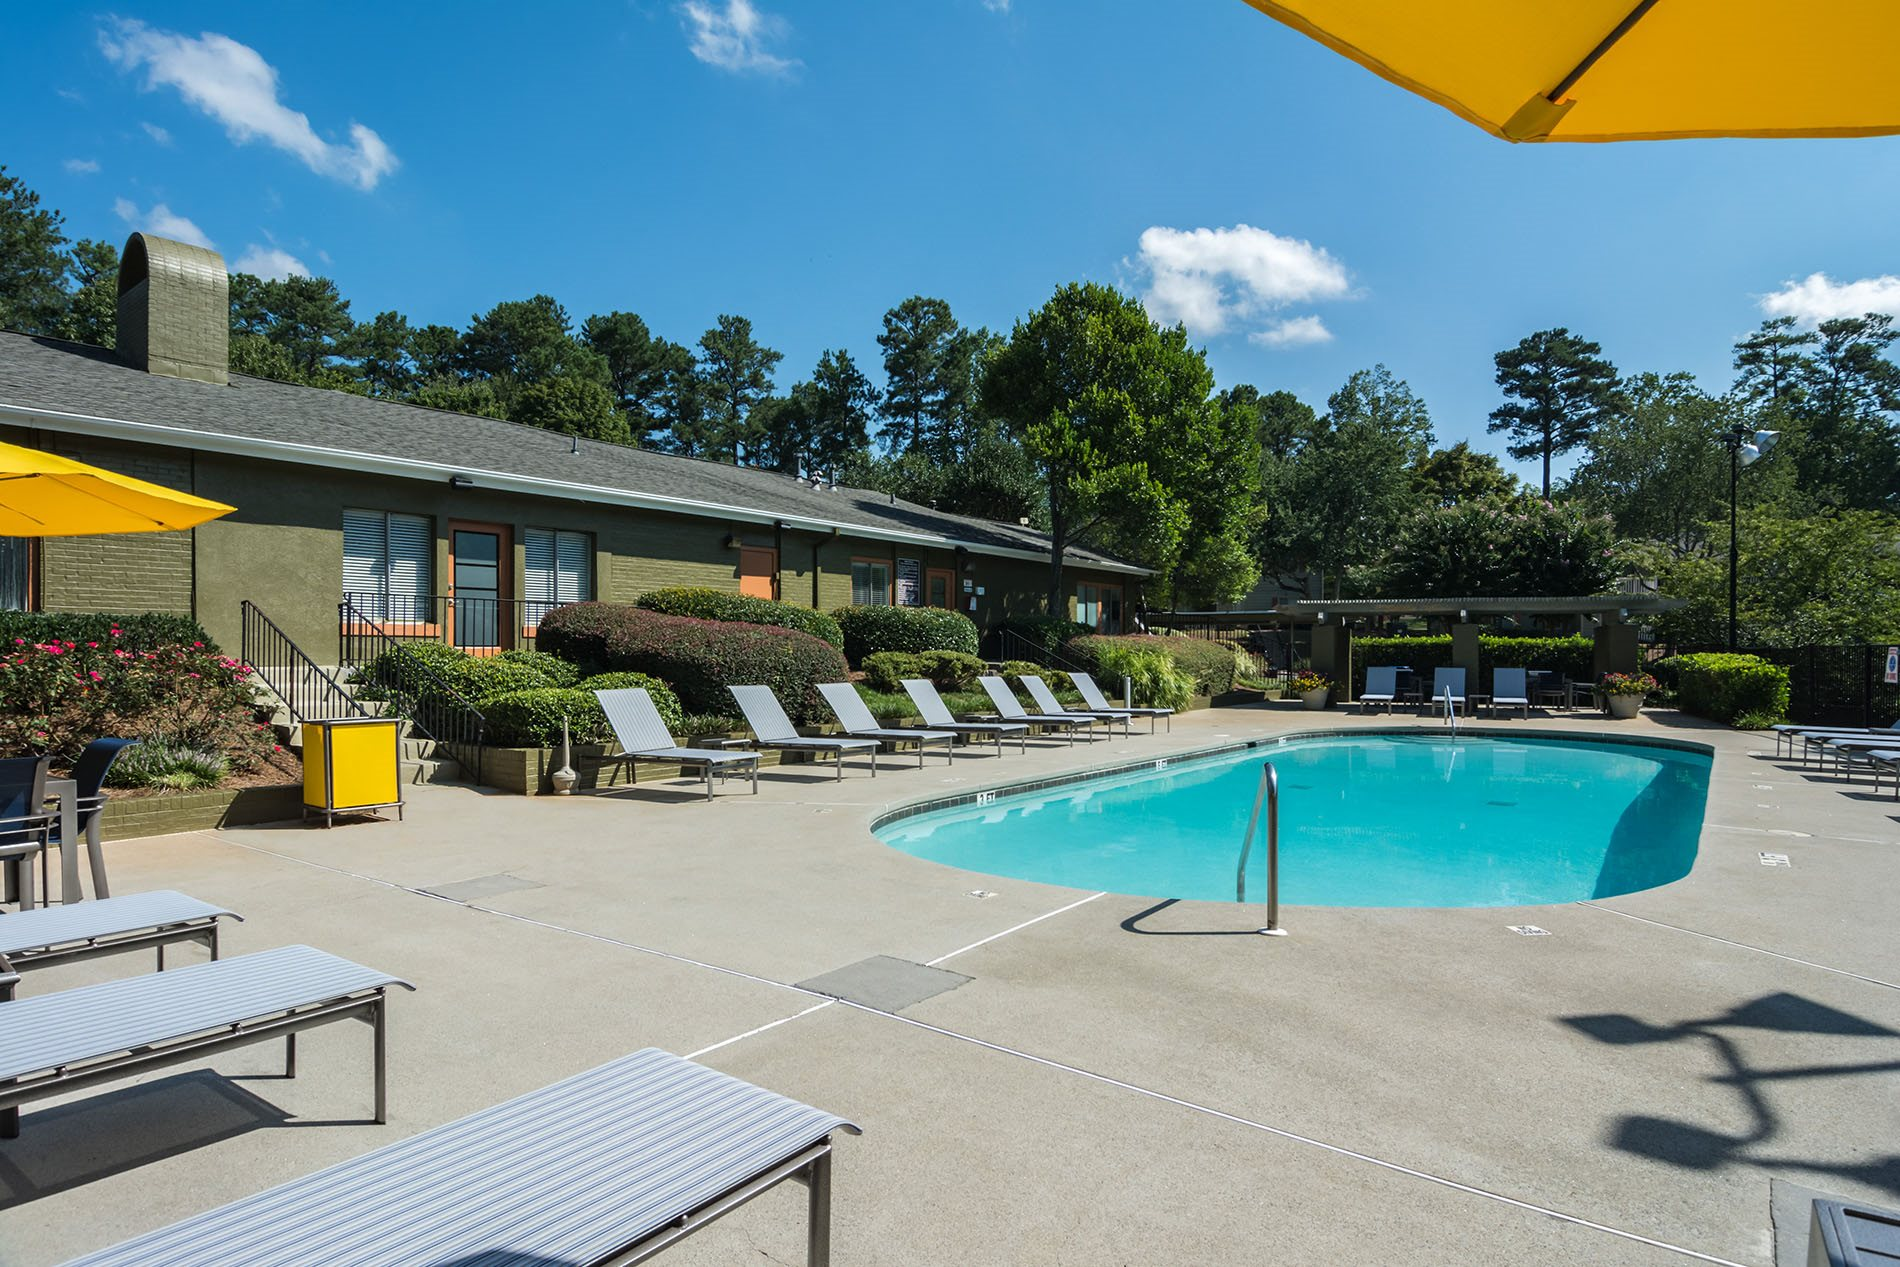 Swimming Pool at Dunwoody Pointe Apartments in Sandy Springs, Georgia, GA 30350